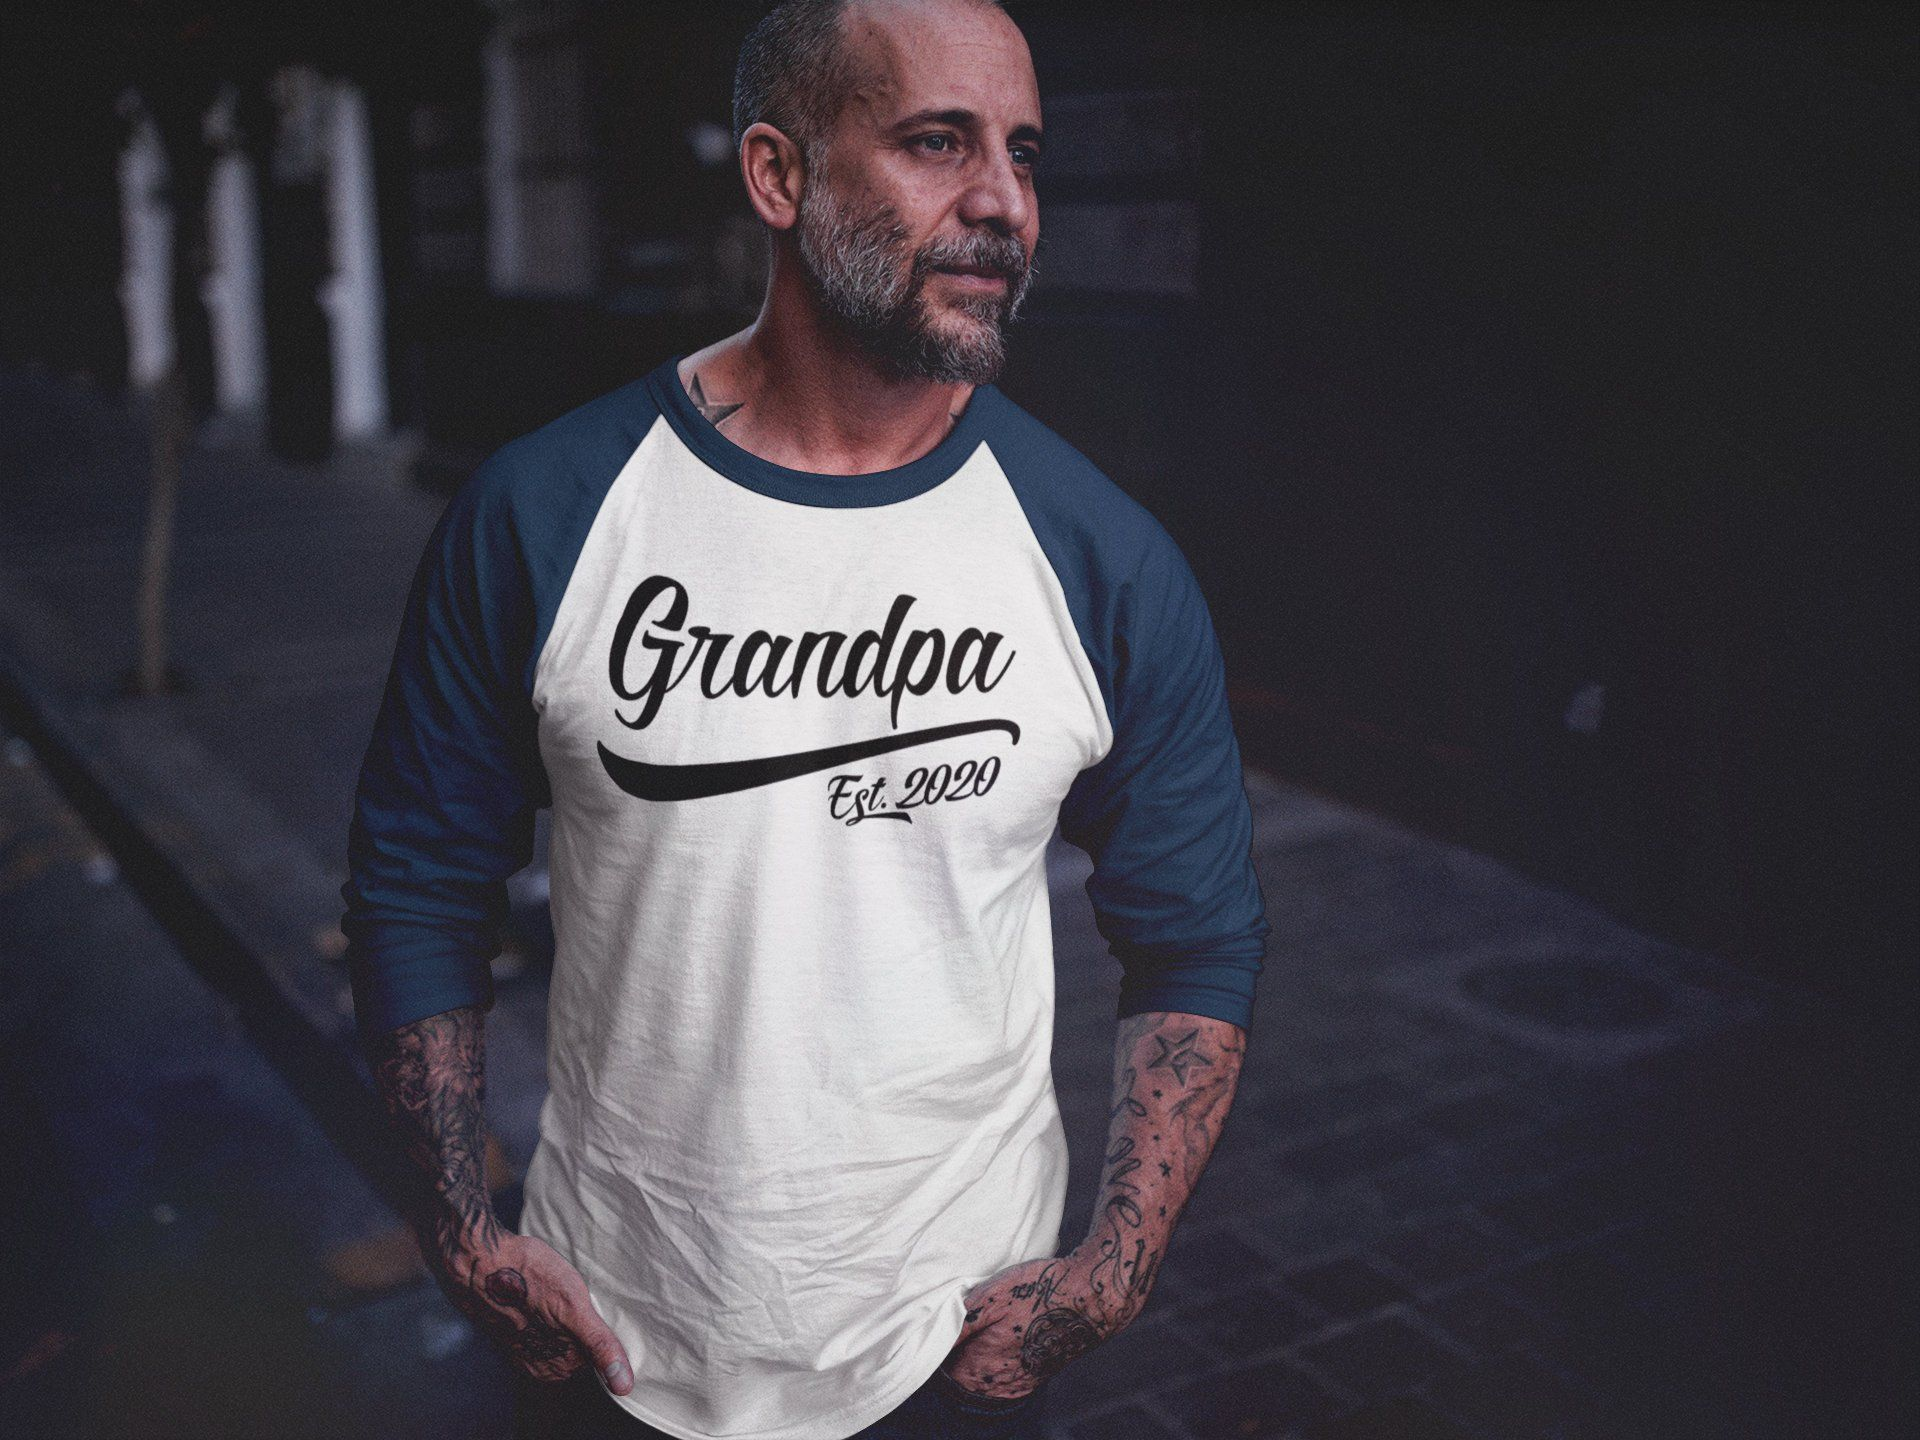 2020 Fathers Day Ideas Men's Grandpa Gift EST. 2020 T Shirt New Baby Reveal Idea Gift